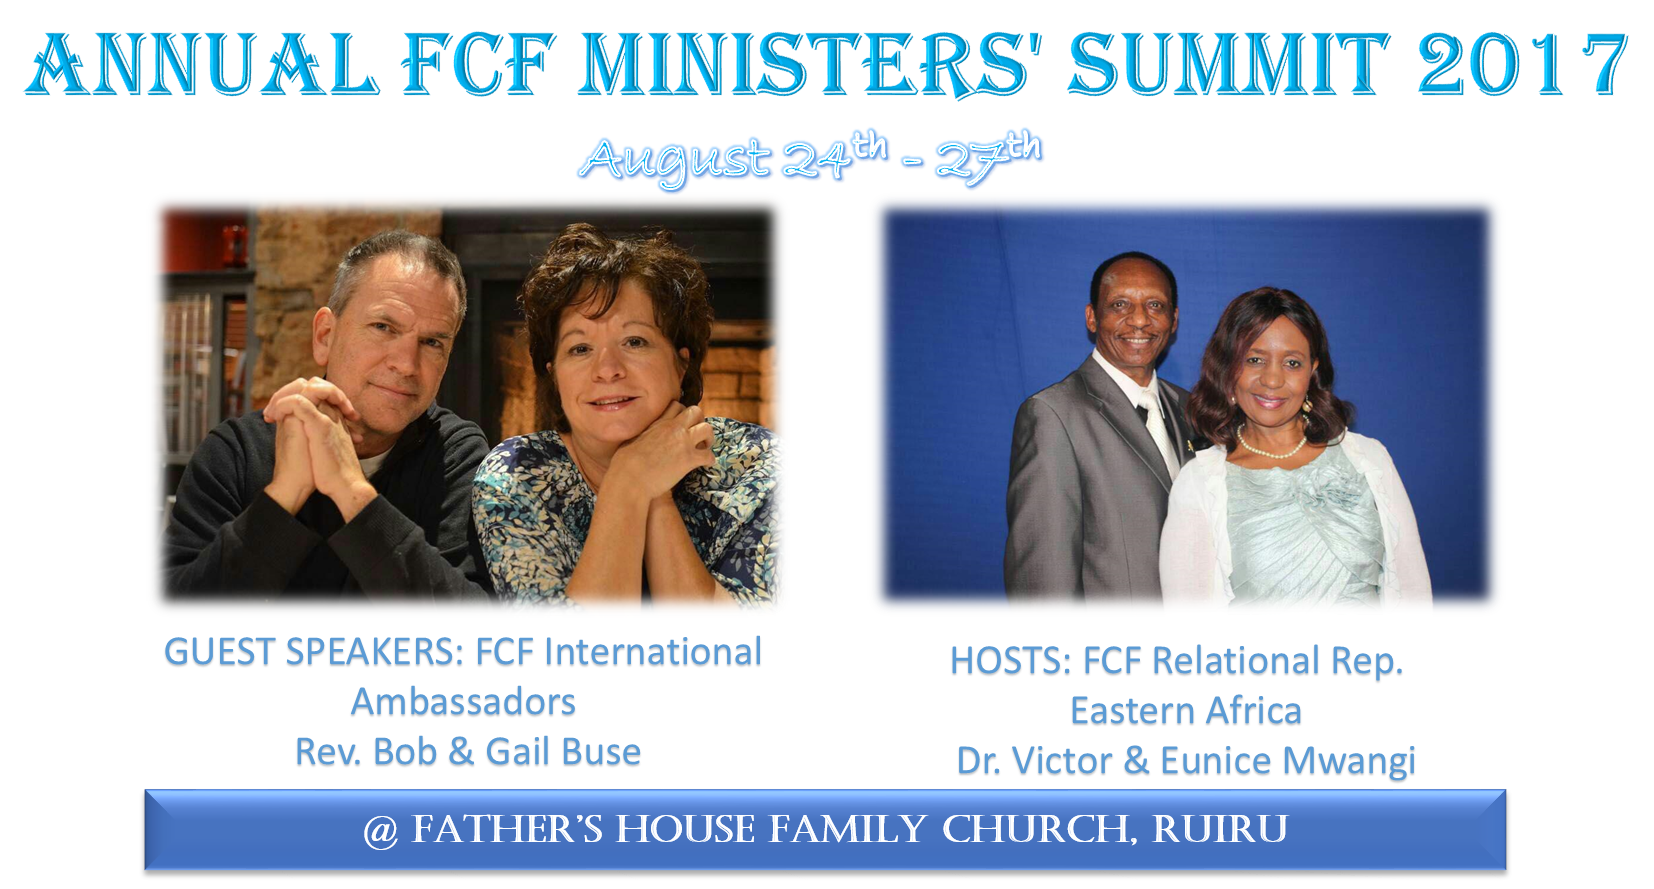 ANNUAL FCF MINISTERS' SUMMIT 2017